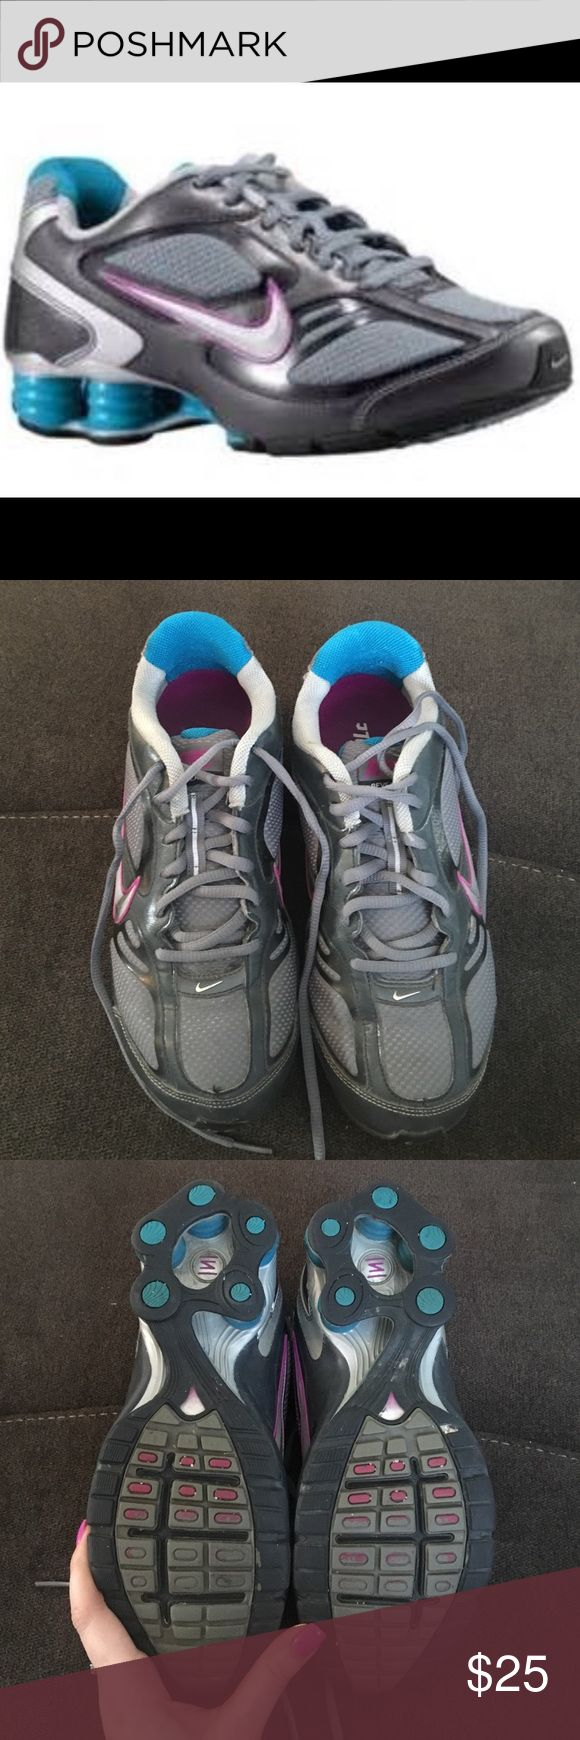 Women's Nike Shock reveal 4 size 9 Women's Nike Shock reveal 4 size 9 in pretty good condition with some minor flaws. Can take more pics on request! They are grey with purple and turquoise accents. Nike Shoes Sneakers